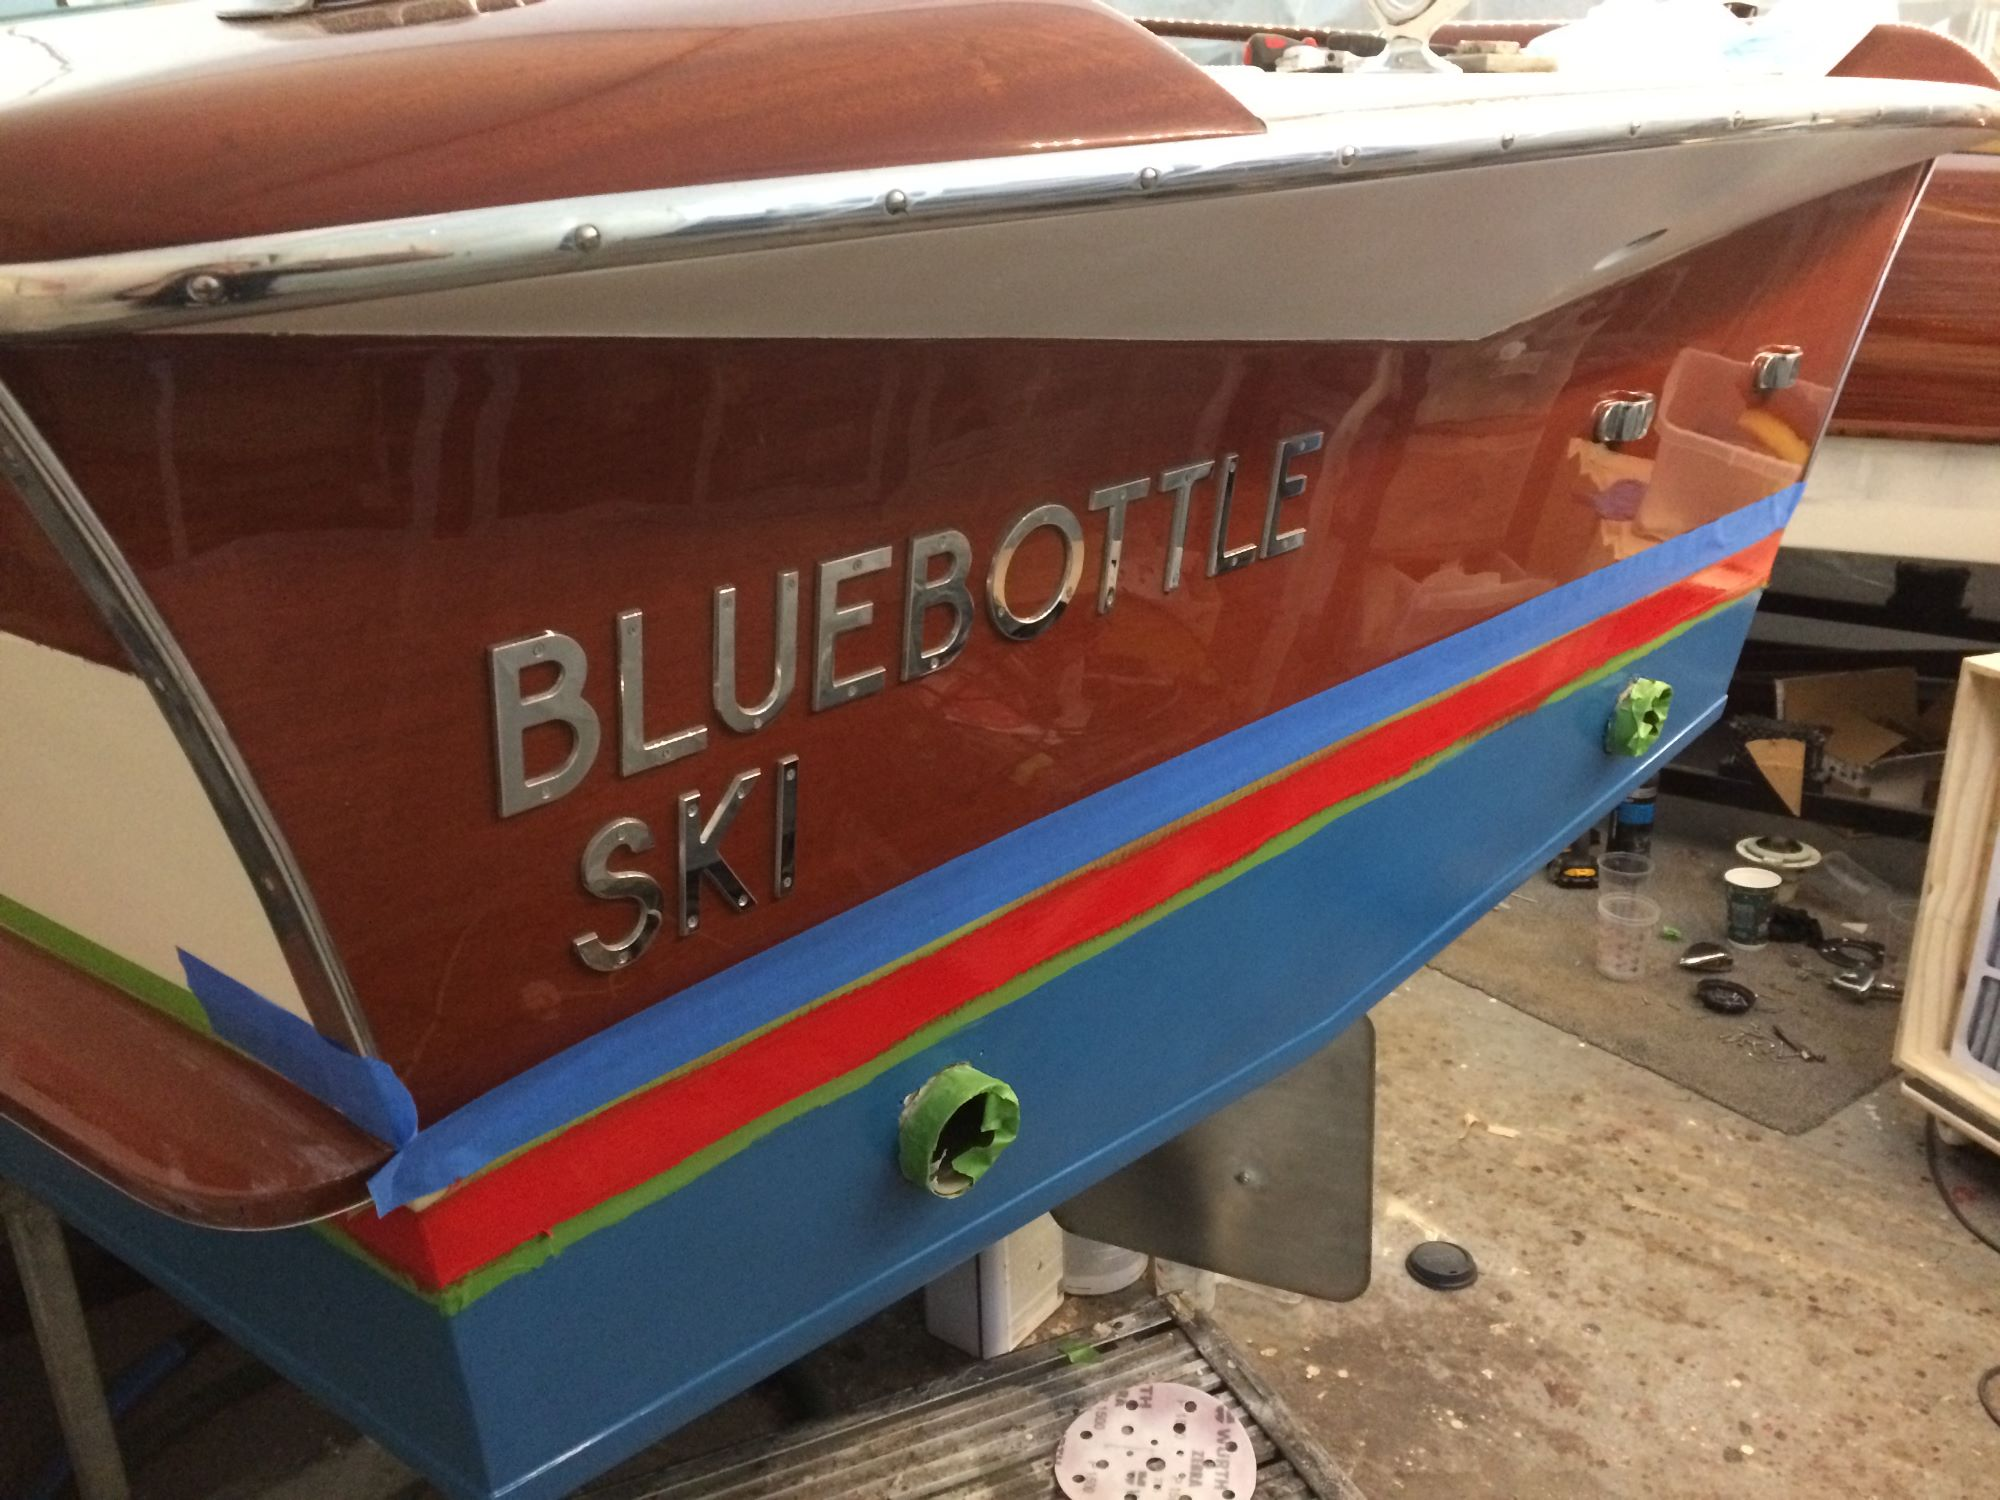 riva junior restoration once owned by Peter Sellers